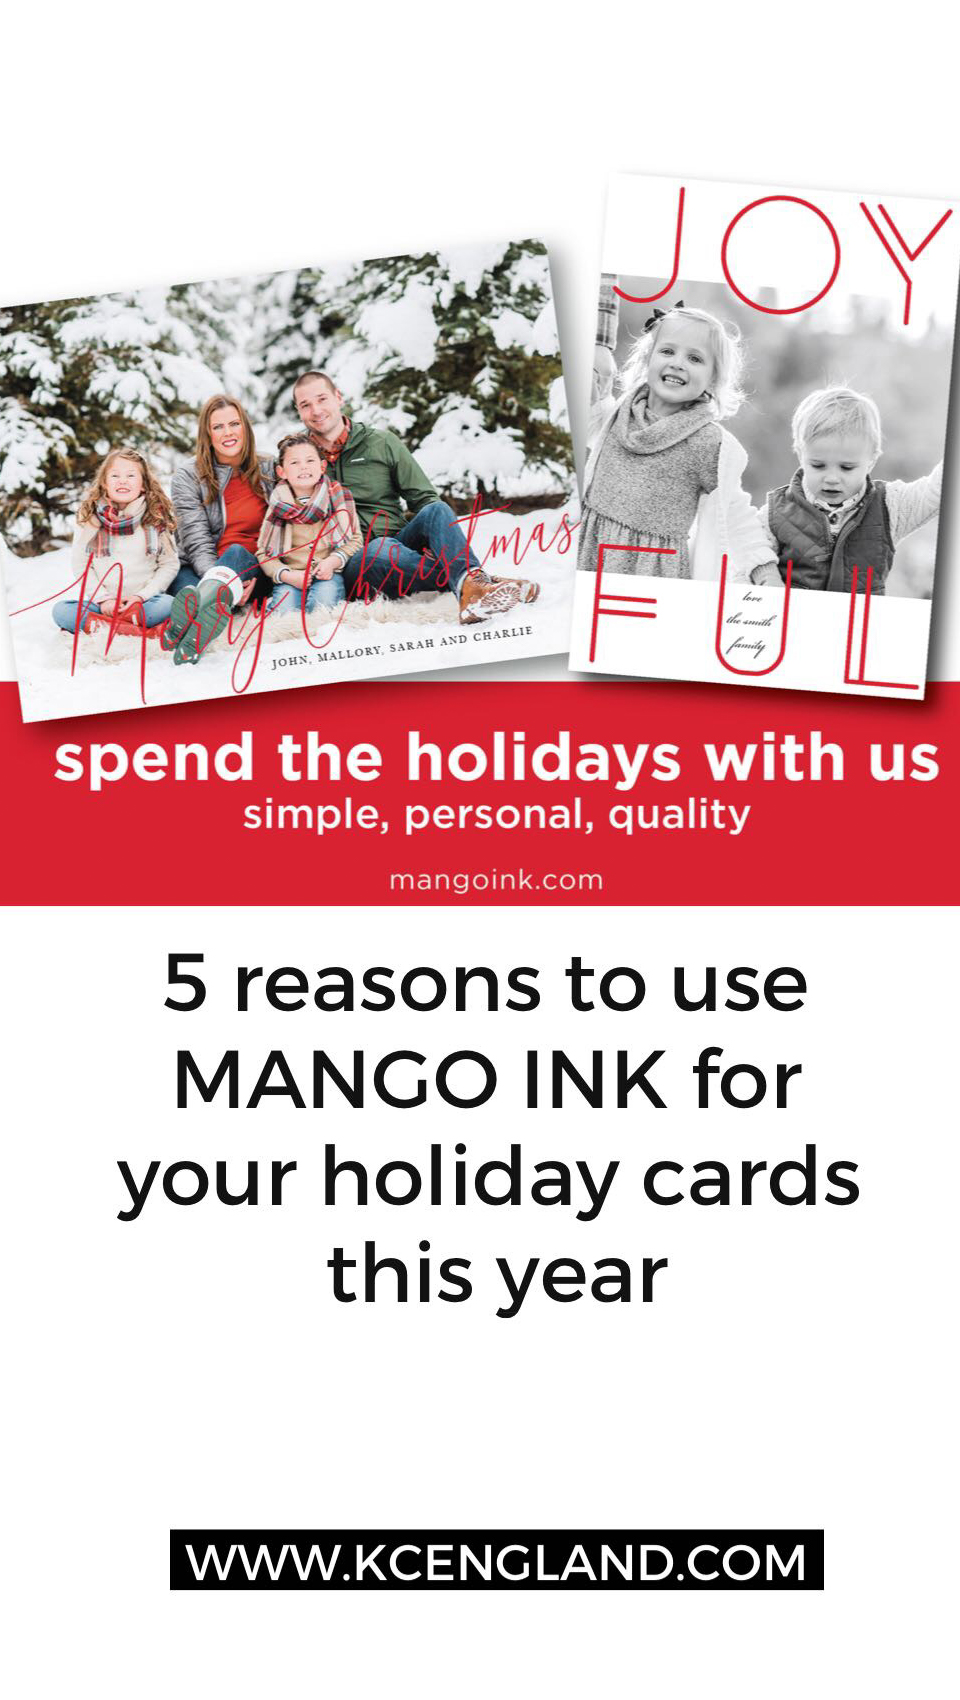 5 reasons to use MANGO INK for your Holiday Cards